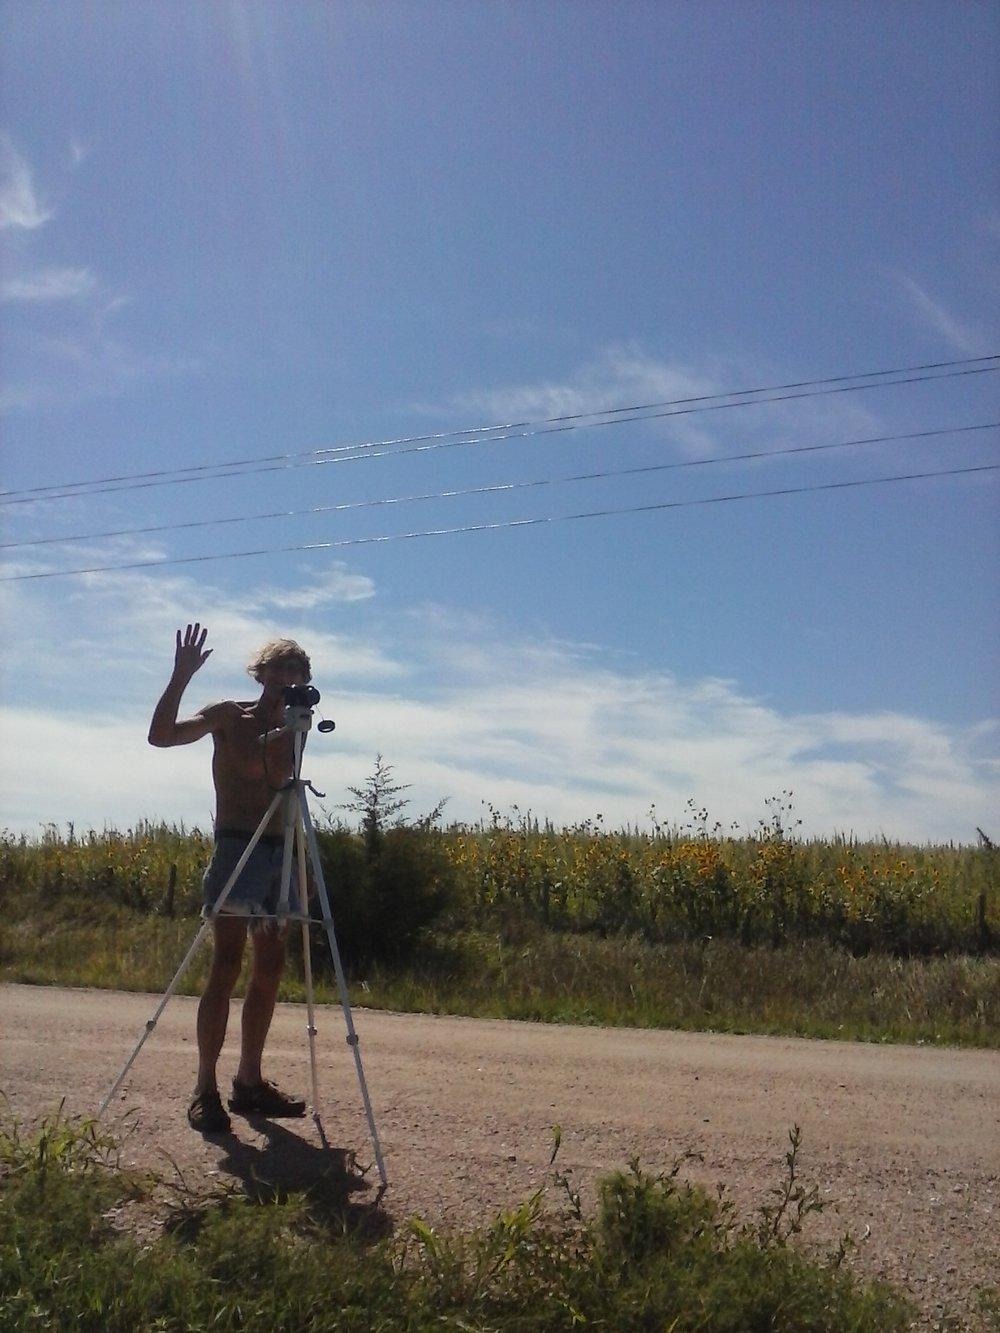 Rob setting up camera in rural Nebraska in anticipation of the total solar eclipse. Photo by Erin Schneider